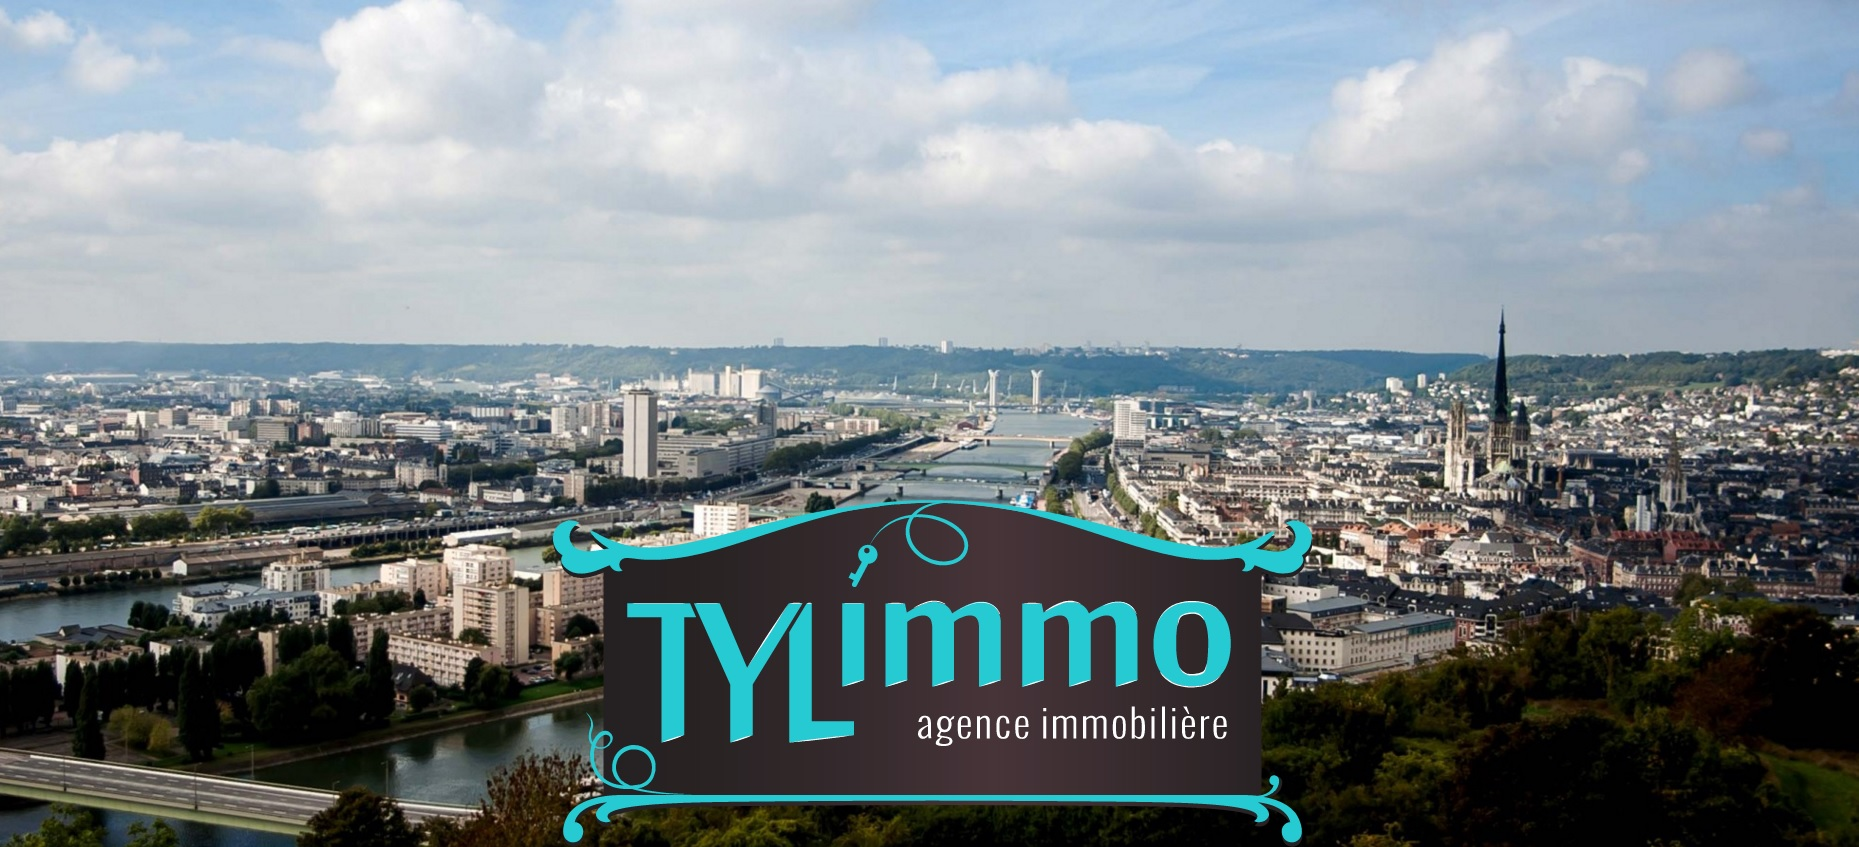 tylimmo agence immobiliere rouen saint sever